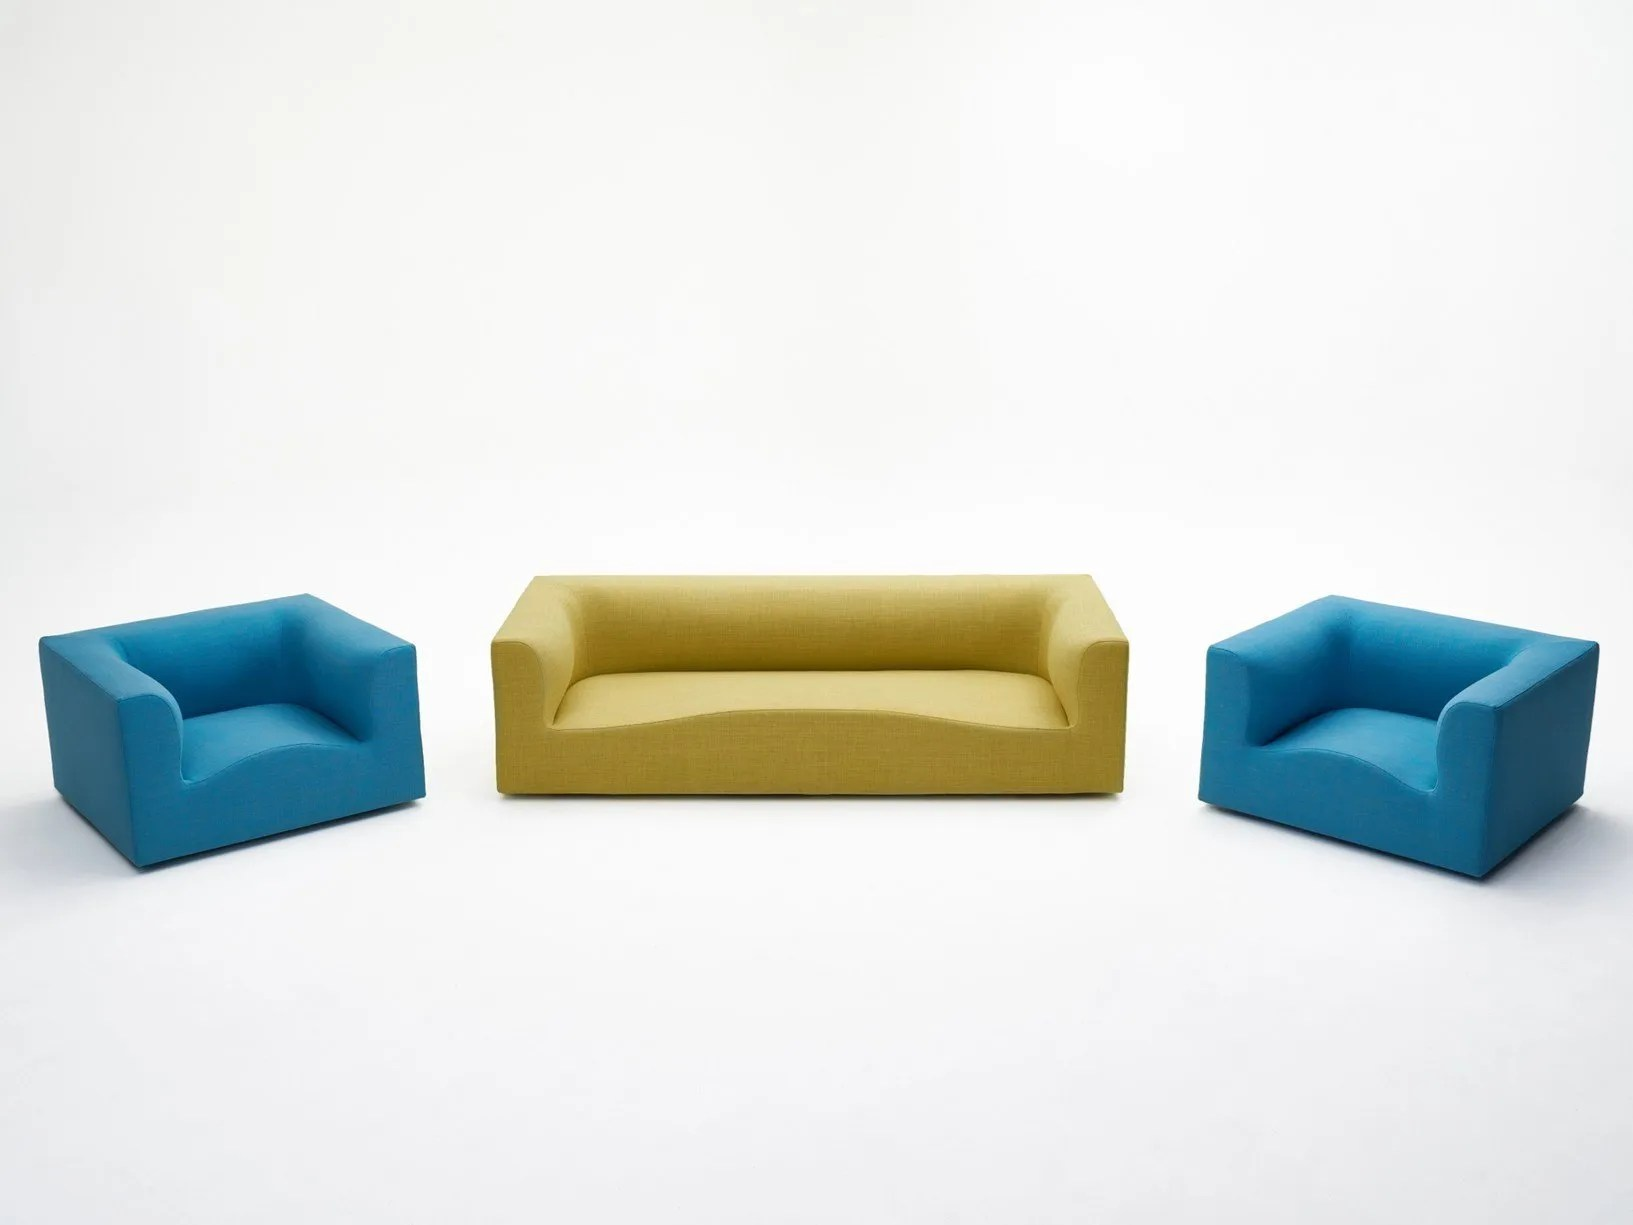 Couchtisch Colombo From Alain Gilles To Joe Colombo Outdoor By Varaschin